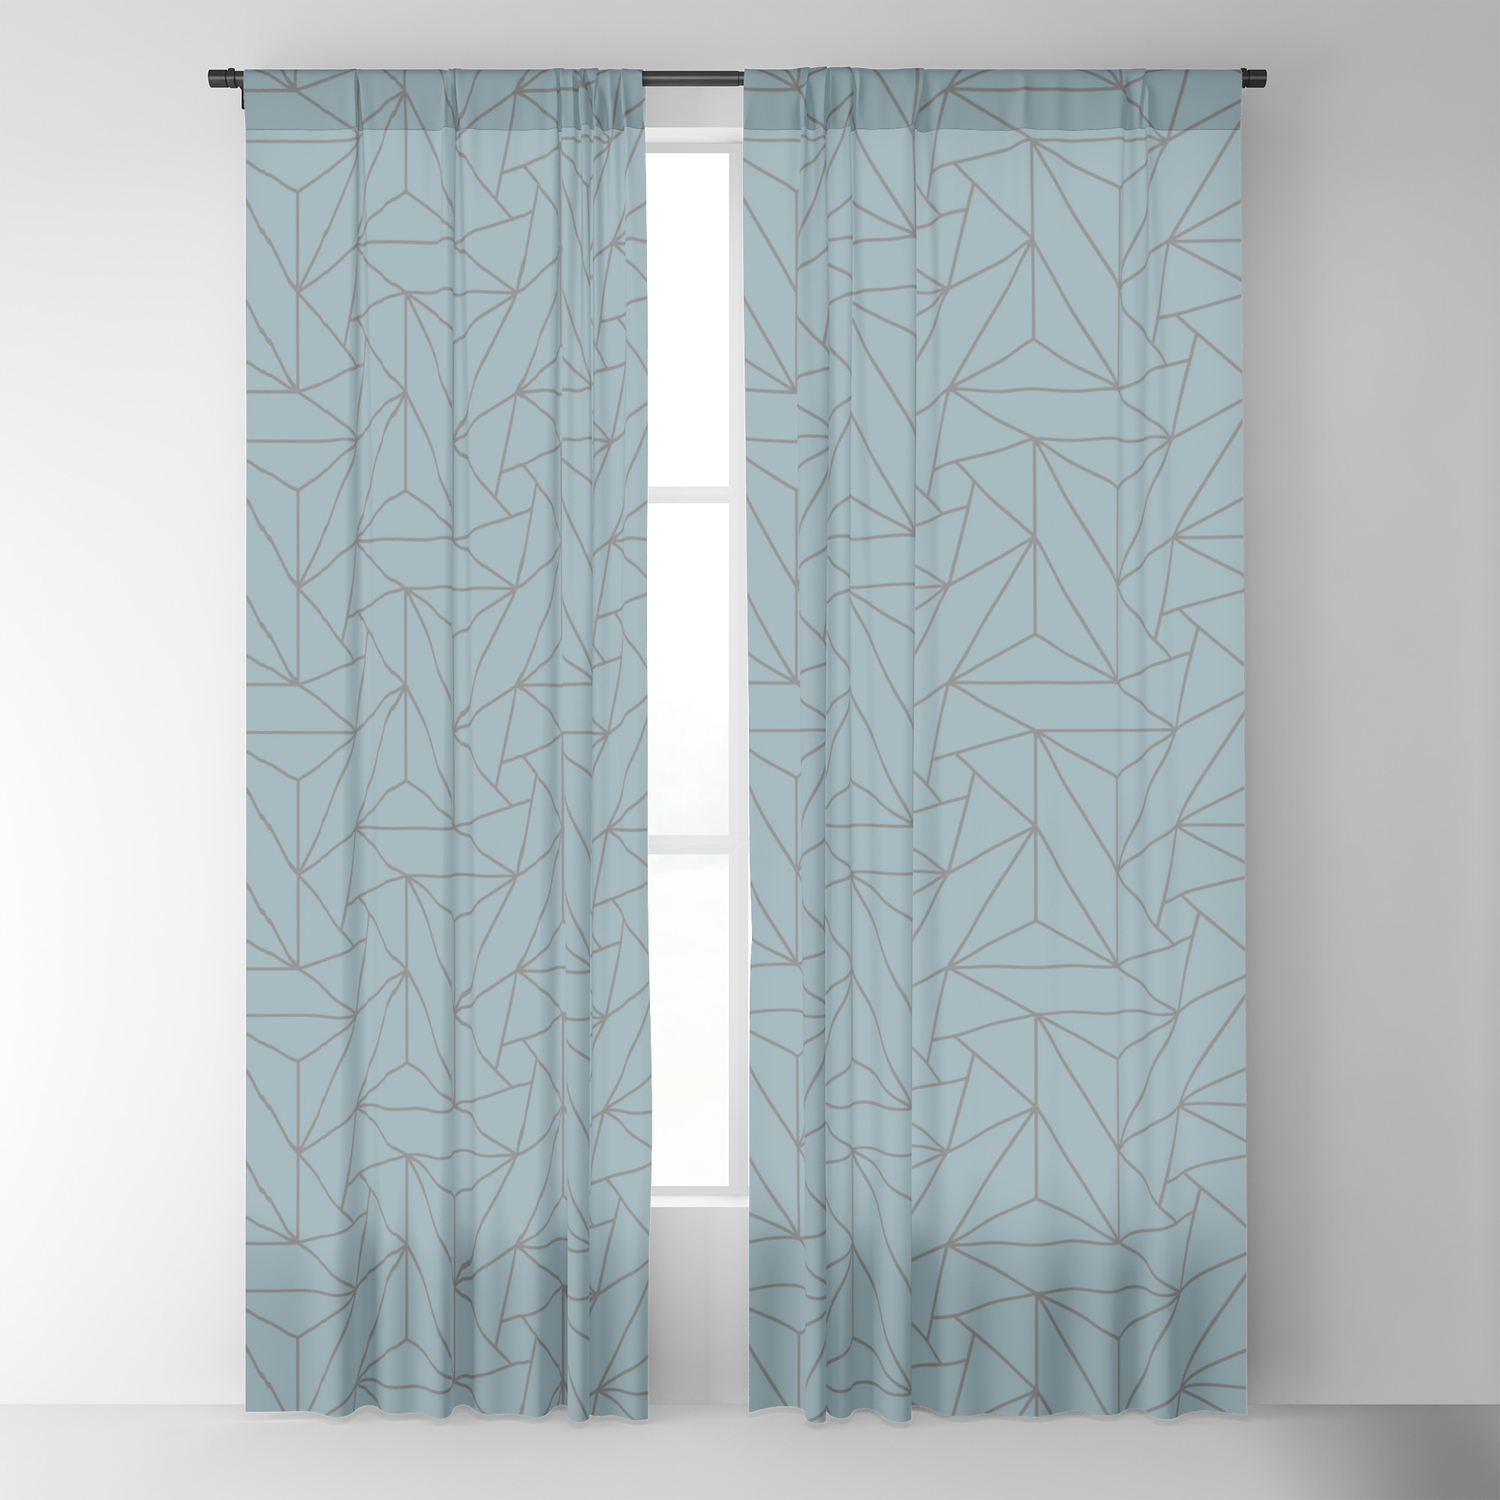 Gray & Pastel Blue Abstract Triangle Geometric Mosaic Shape Pattern Pairs  To 2020 Color Of The Year Blackout Curtainpipafineart Pertaining To Abstract Blackout Curtain Panel Pairs (Image 16 of 22)